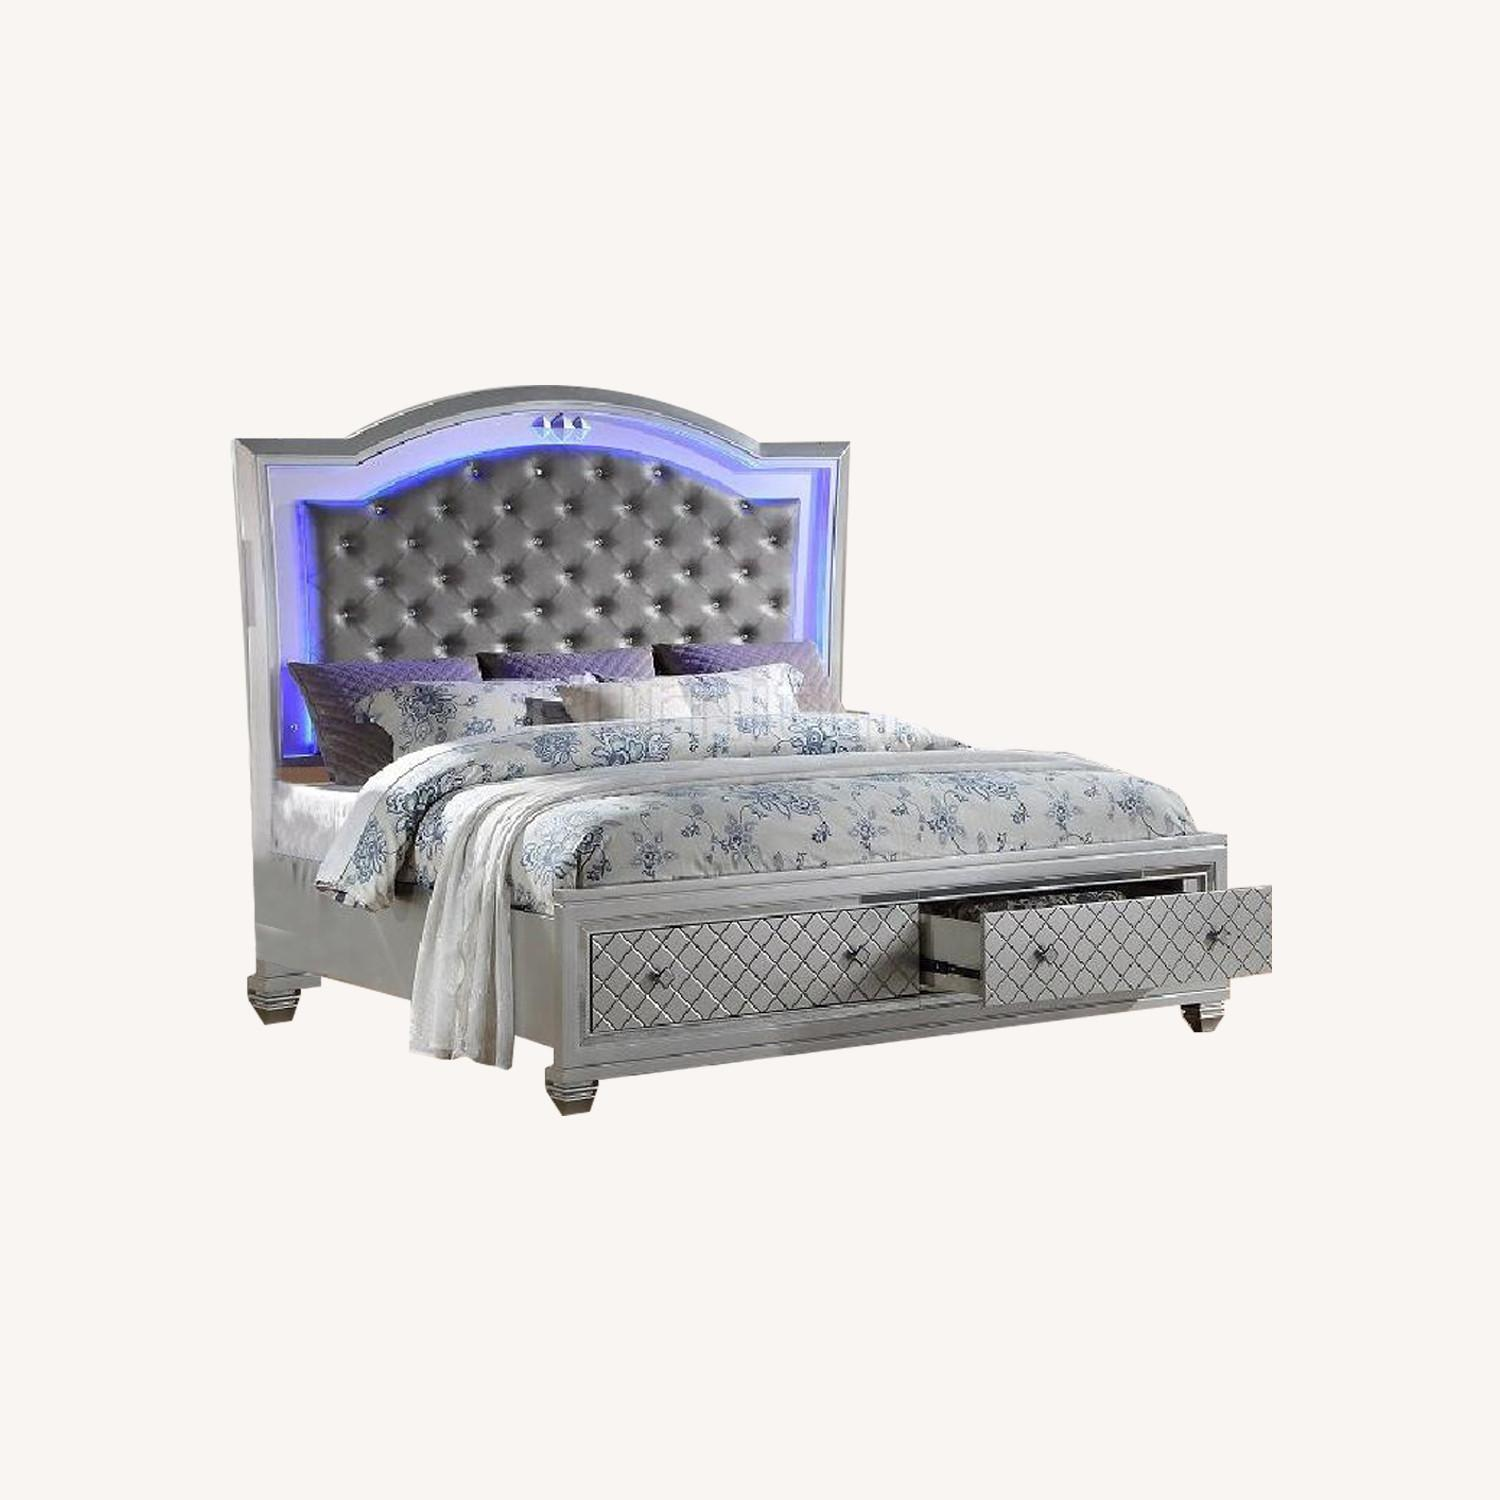 Silver Queen Size Bed w/ Storage & Lights - image-0